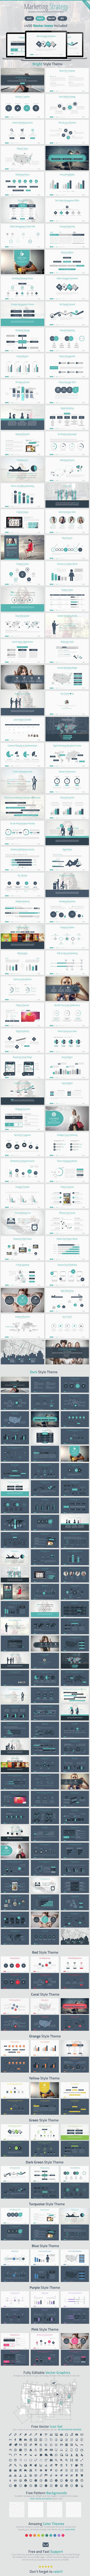 Marketing Strategy Powerpoint Presentation (PowerPoint Templates)